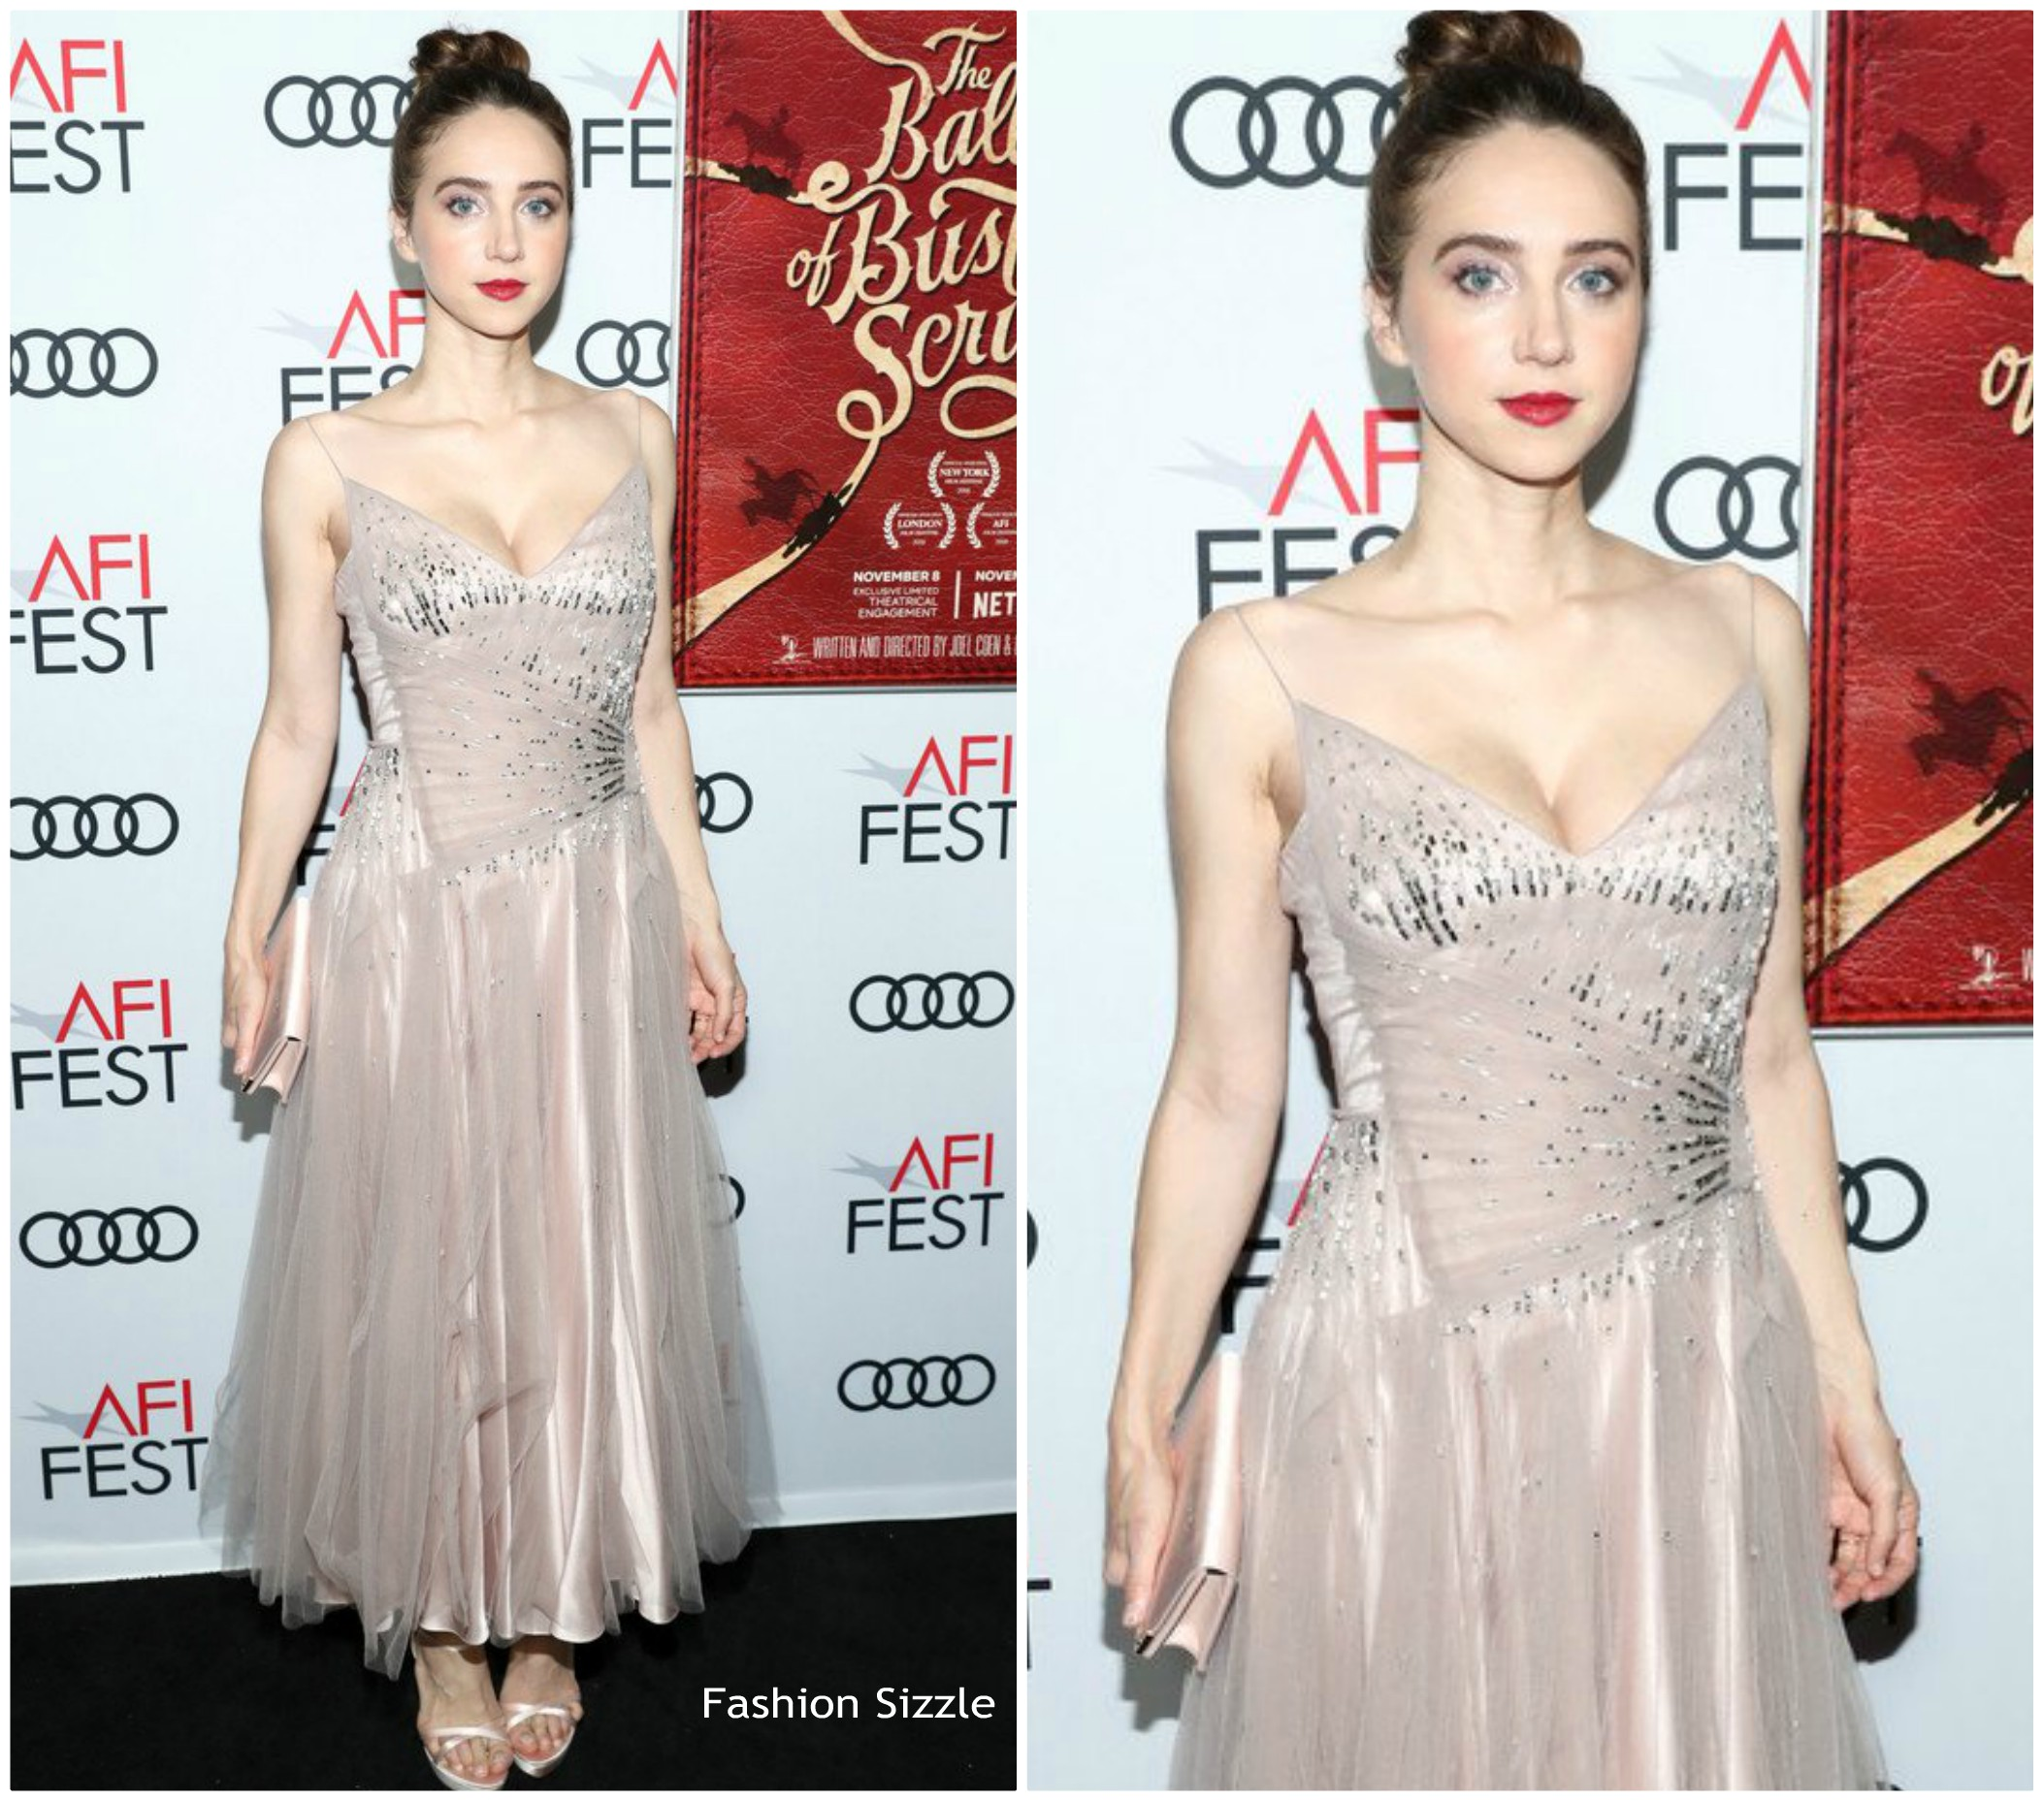 zoe-kazan-in-prada-the-balland-of-buster-scruggs-afi-gala